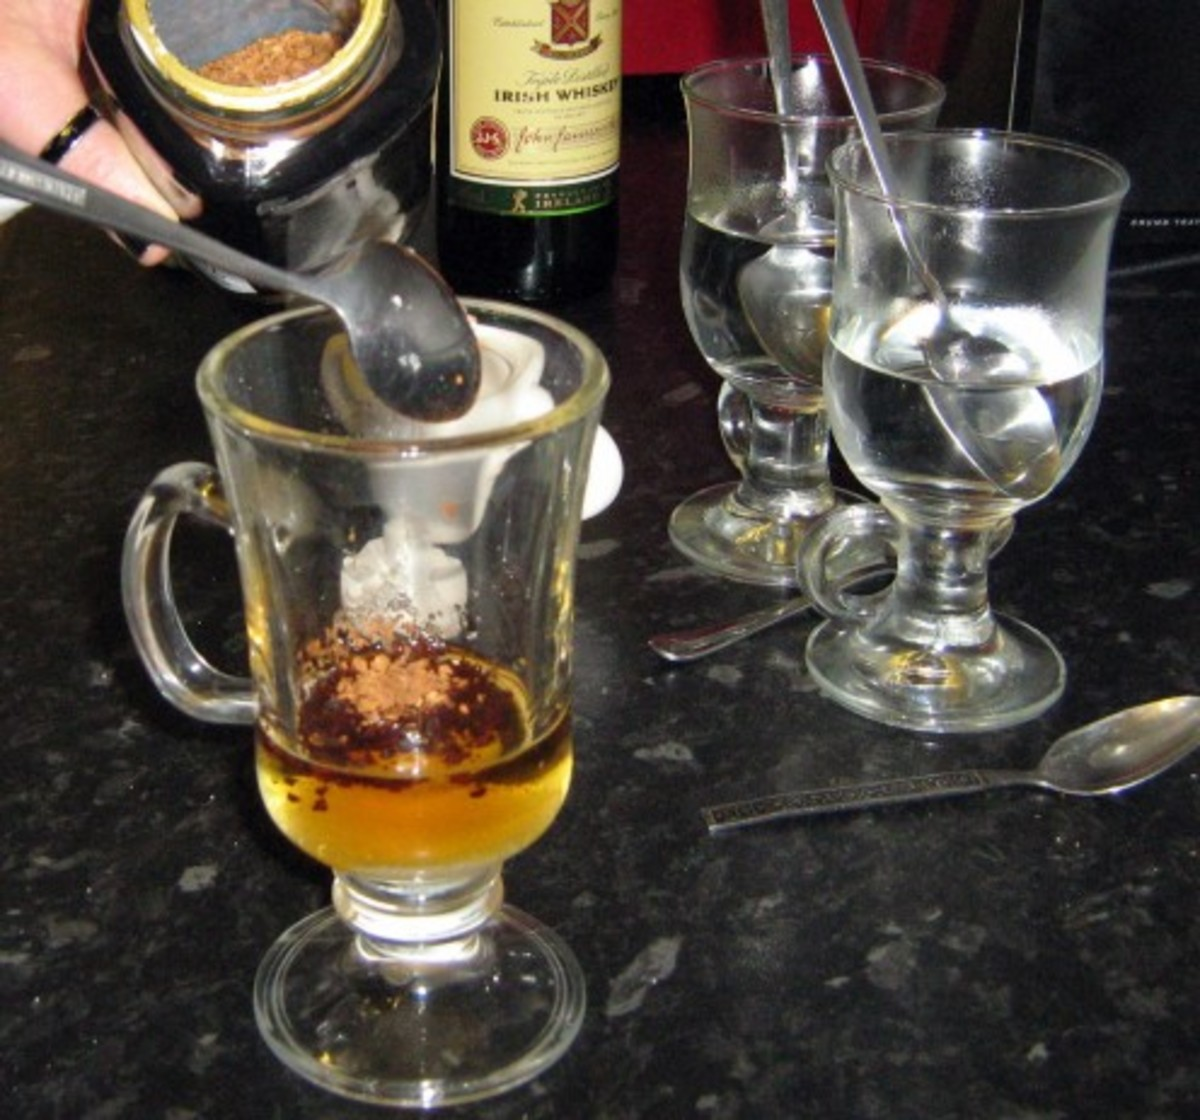 Add 1 1/2 teaspoons of instant coffee to each glass.